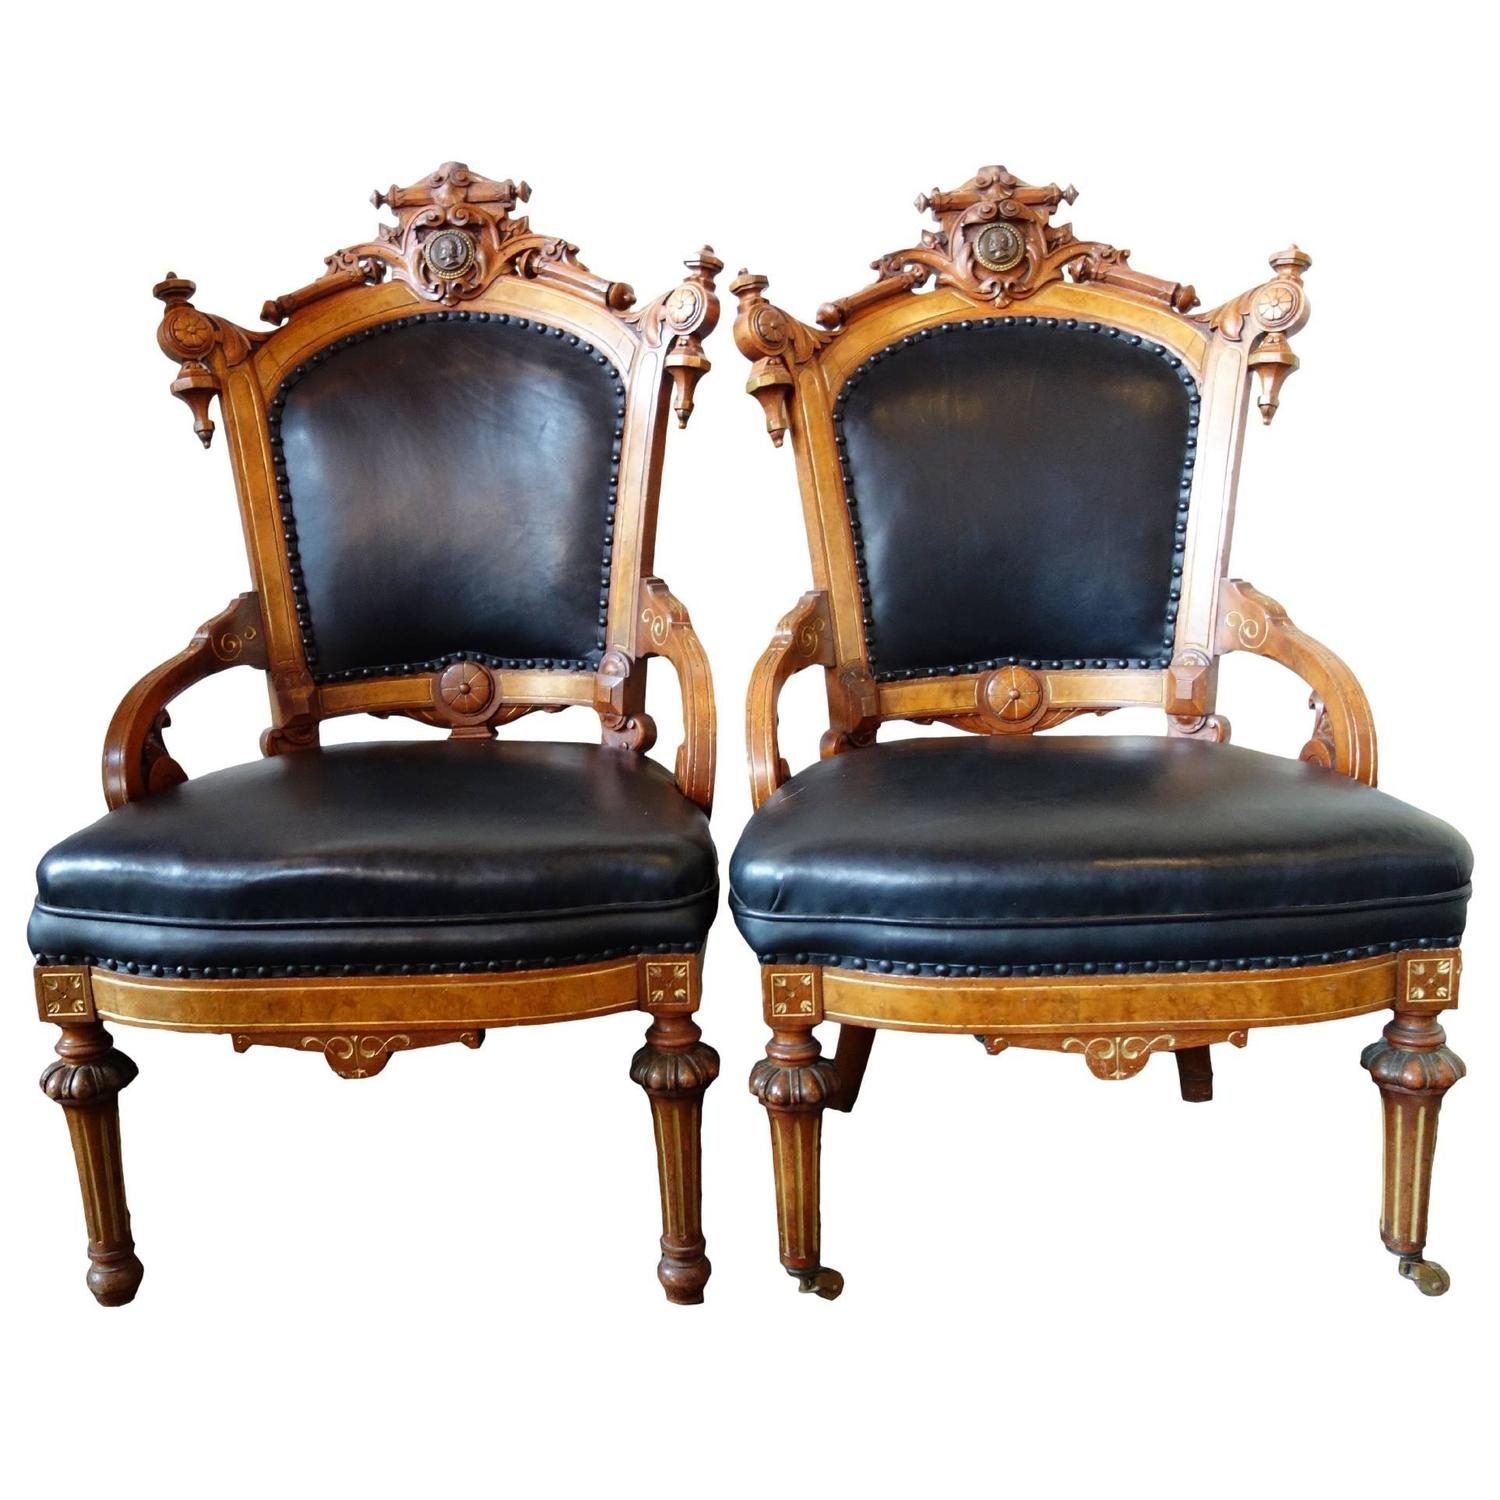 Pair of Rococo Revival John Jelliff Parlor Chairs at 1stdibs